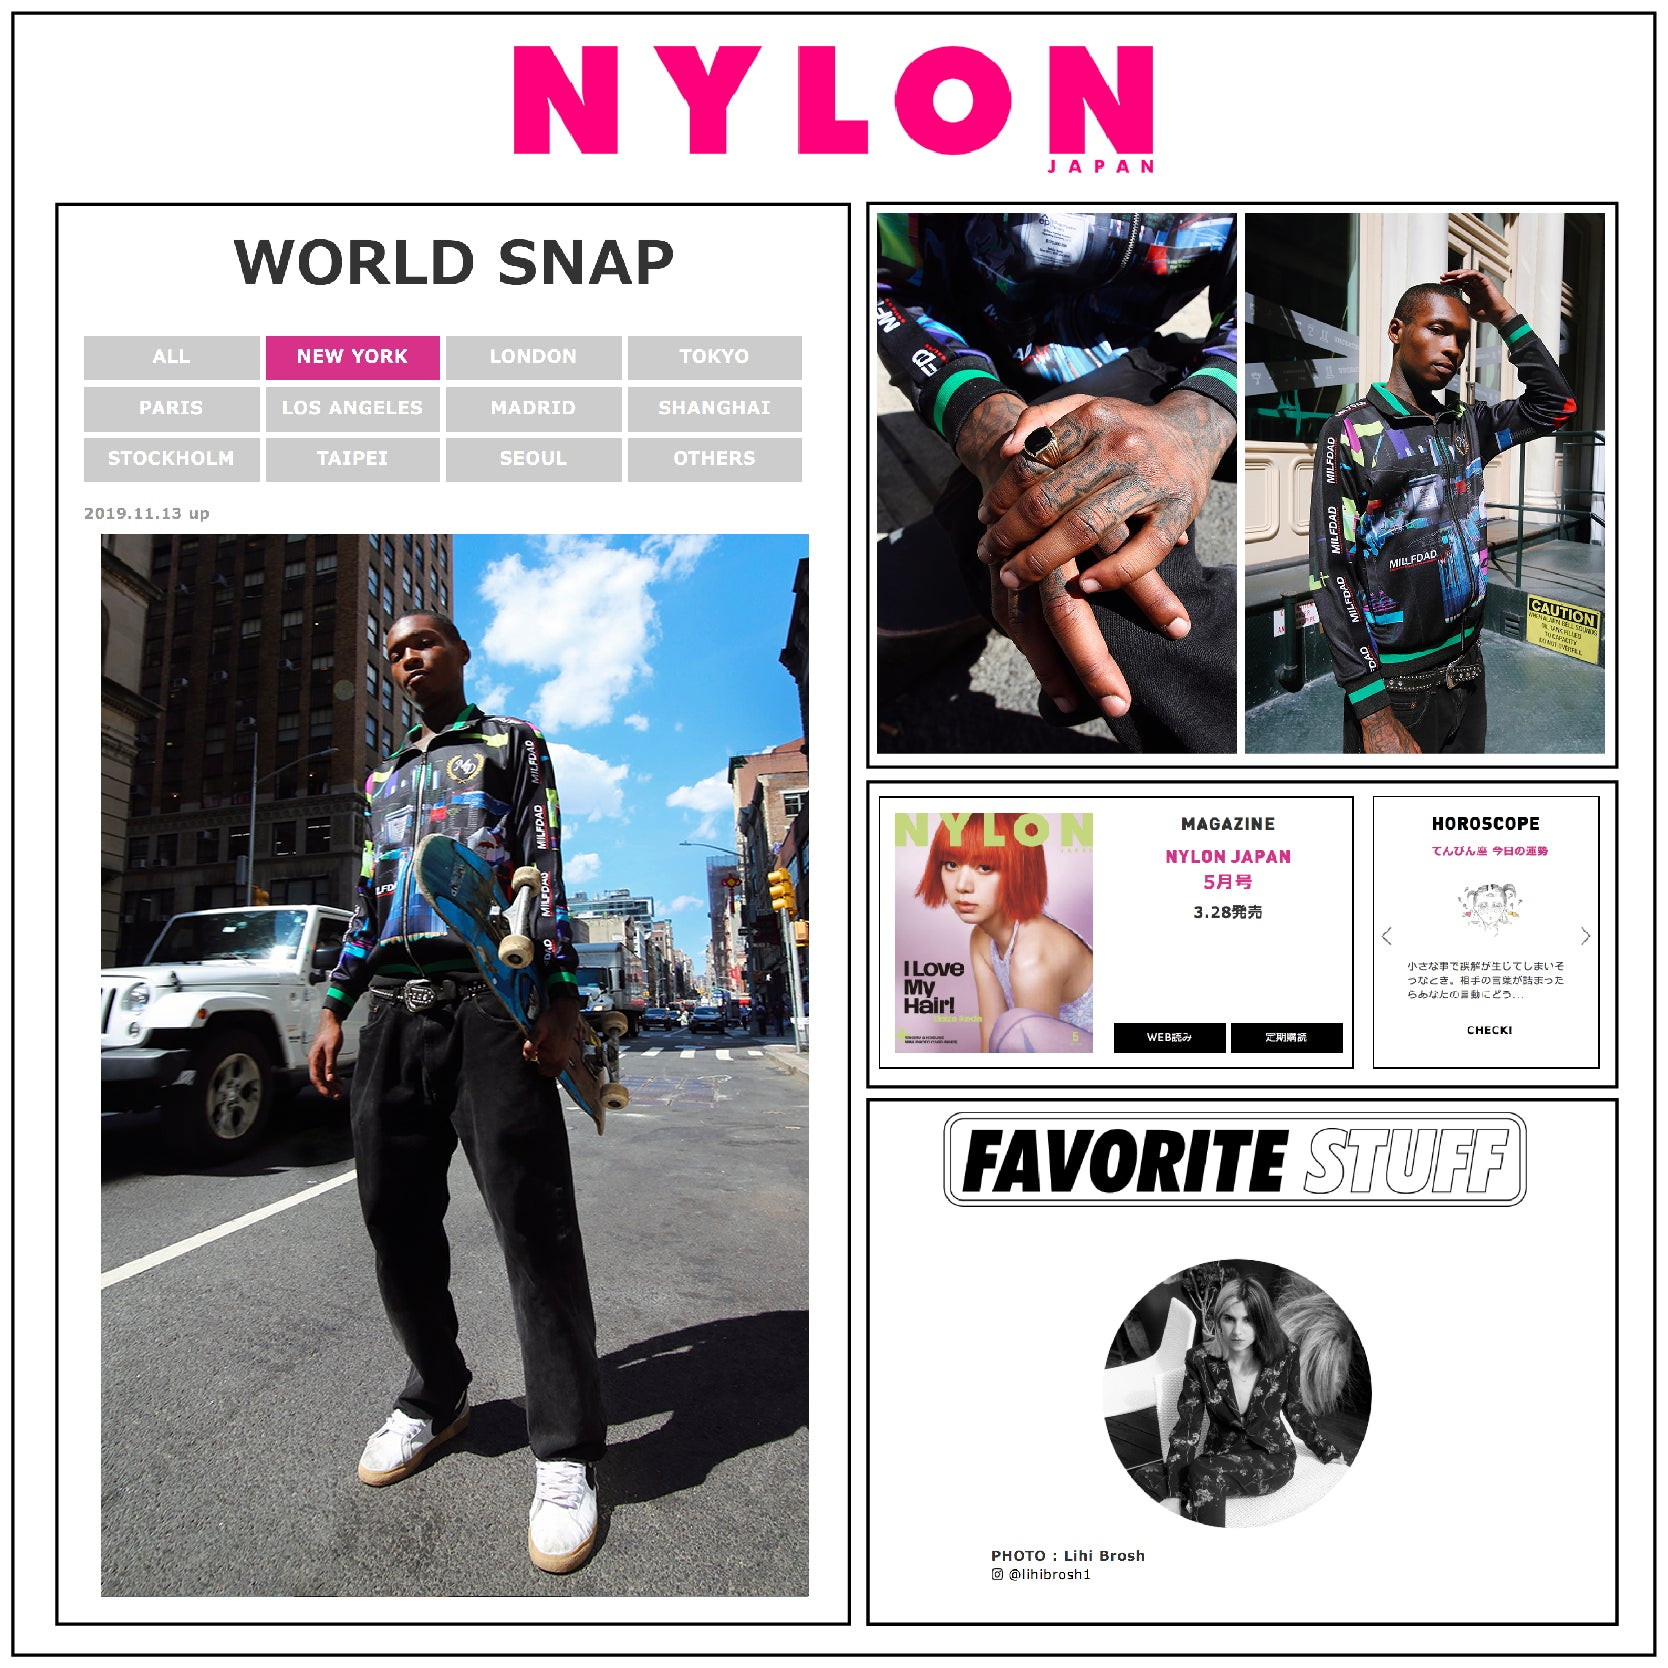 Nylon World Snap: Milfdad. Photographs by Lihi Brosh